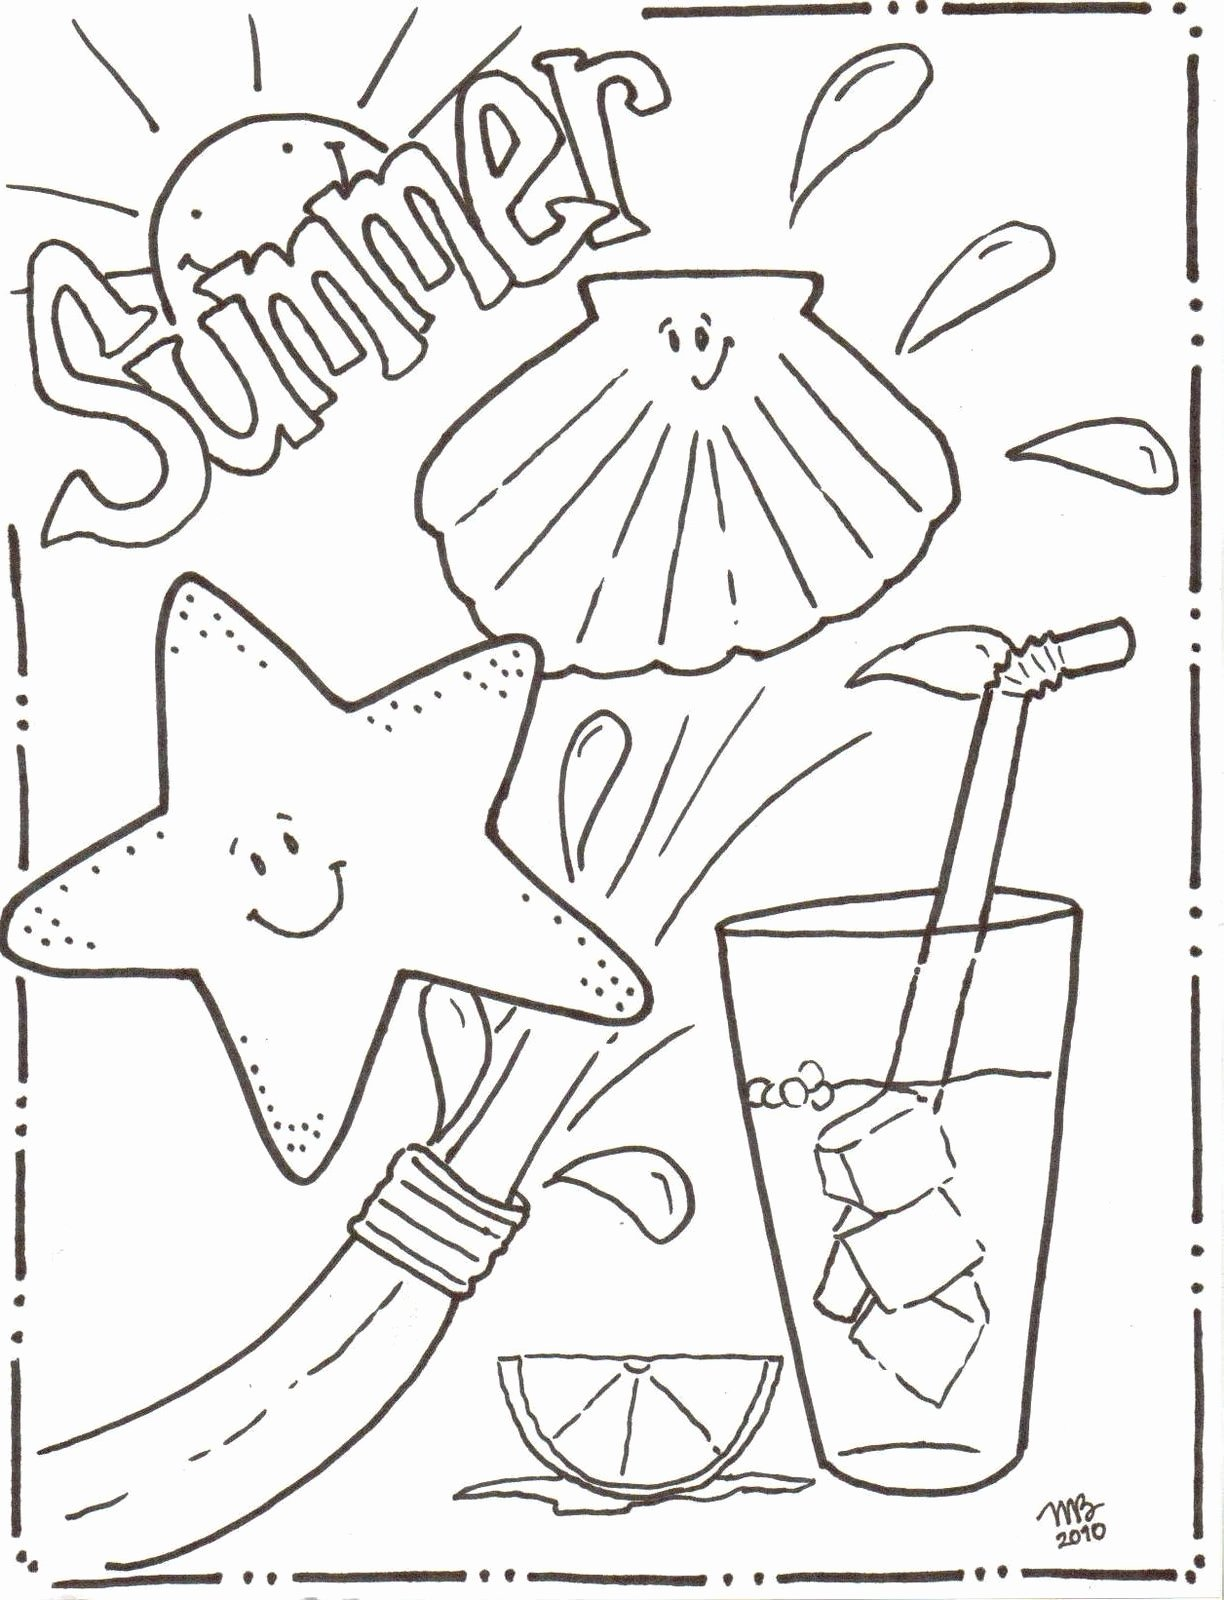 Summer Coloring Worksheets for Preschoolers Fresh Summertime Coloring Sheets